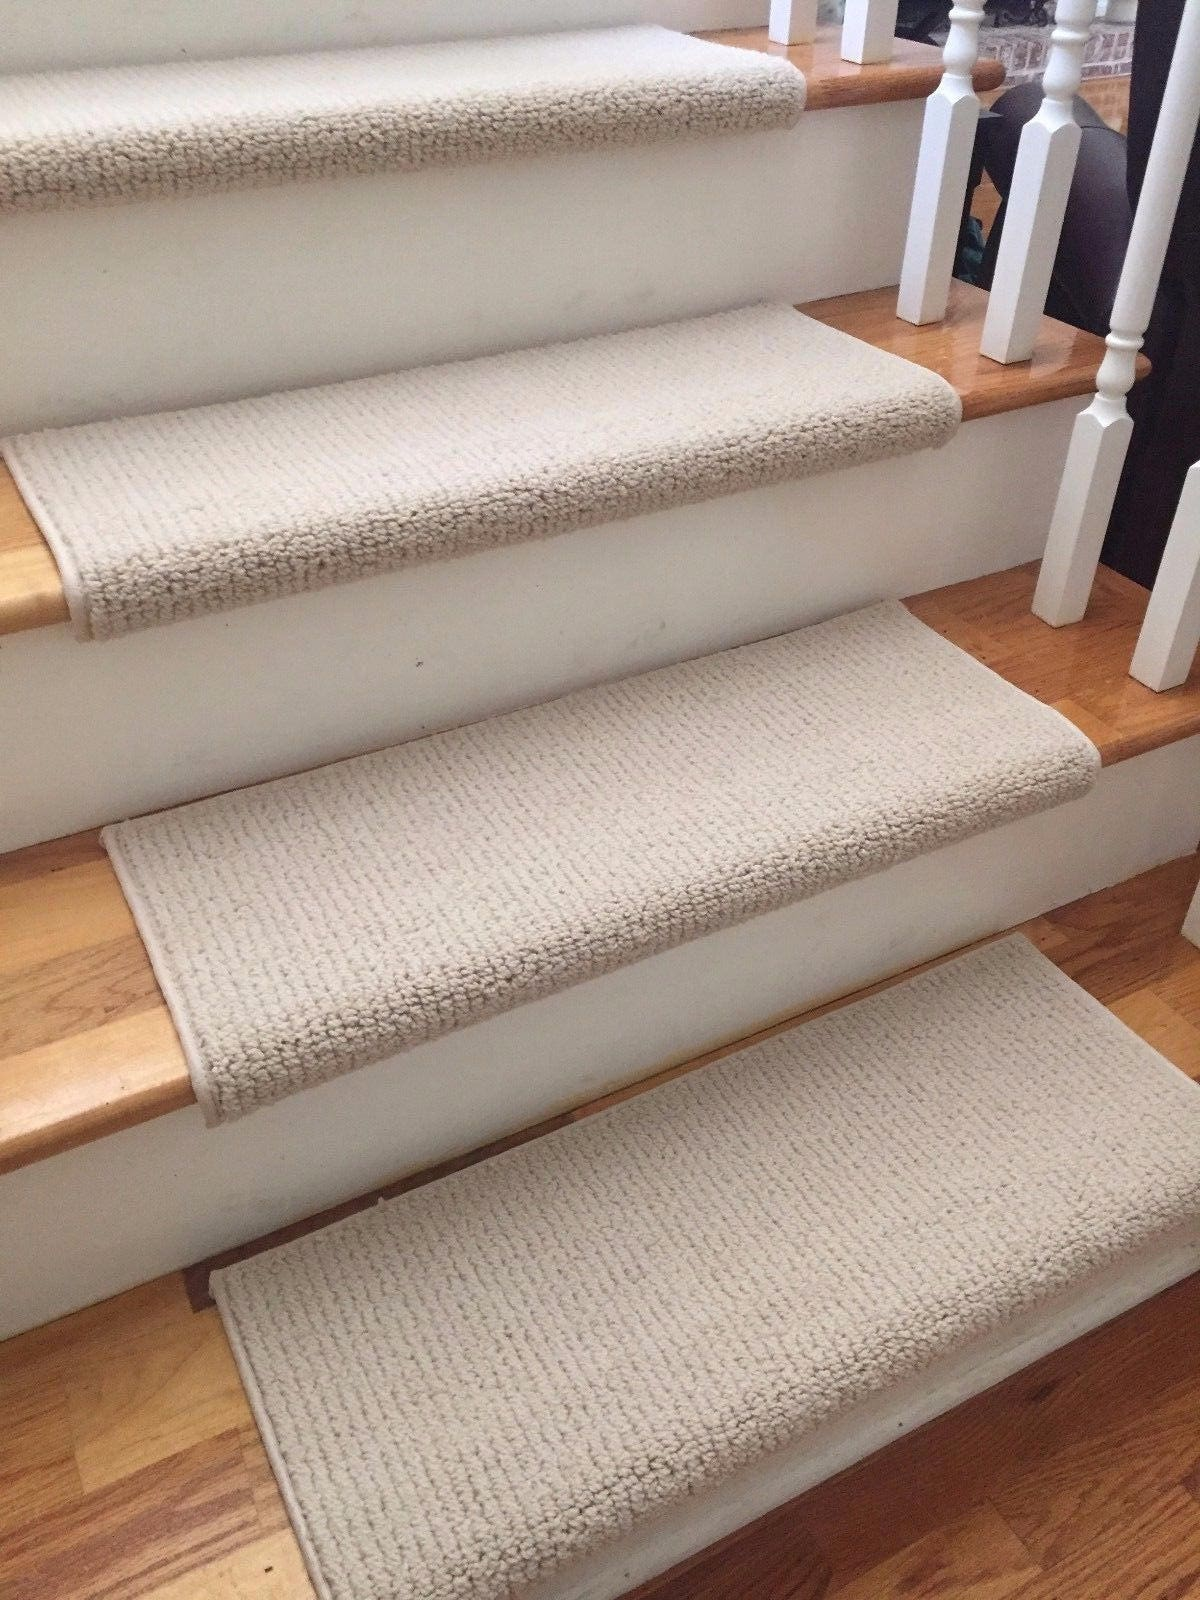 laredo corde ivory new zealand wool true bullnose carpet stair tread runner replacement for style comfort and safety sold each - Bullnose Stair Tread